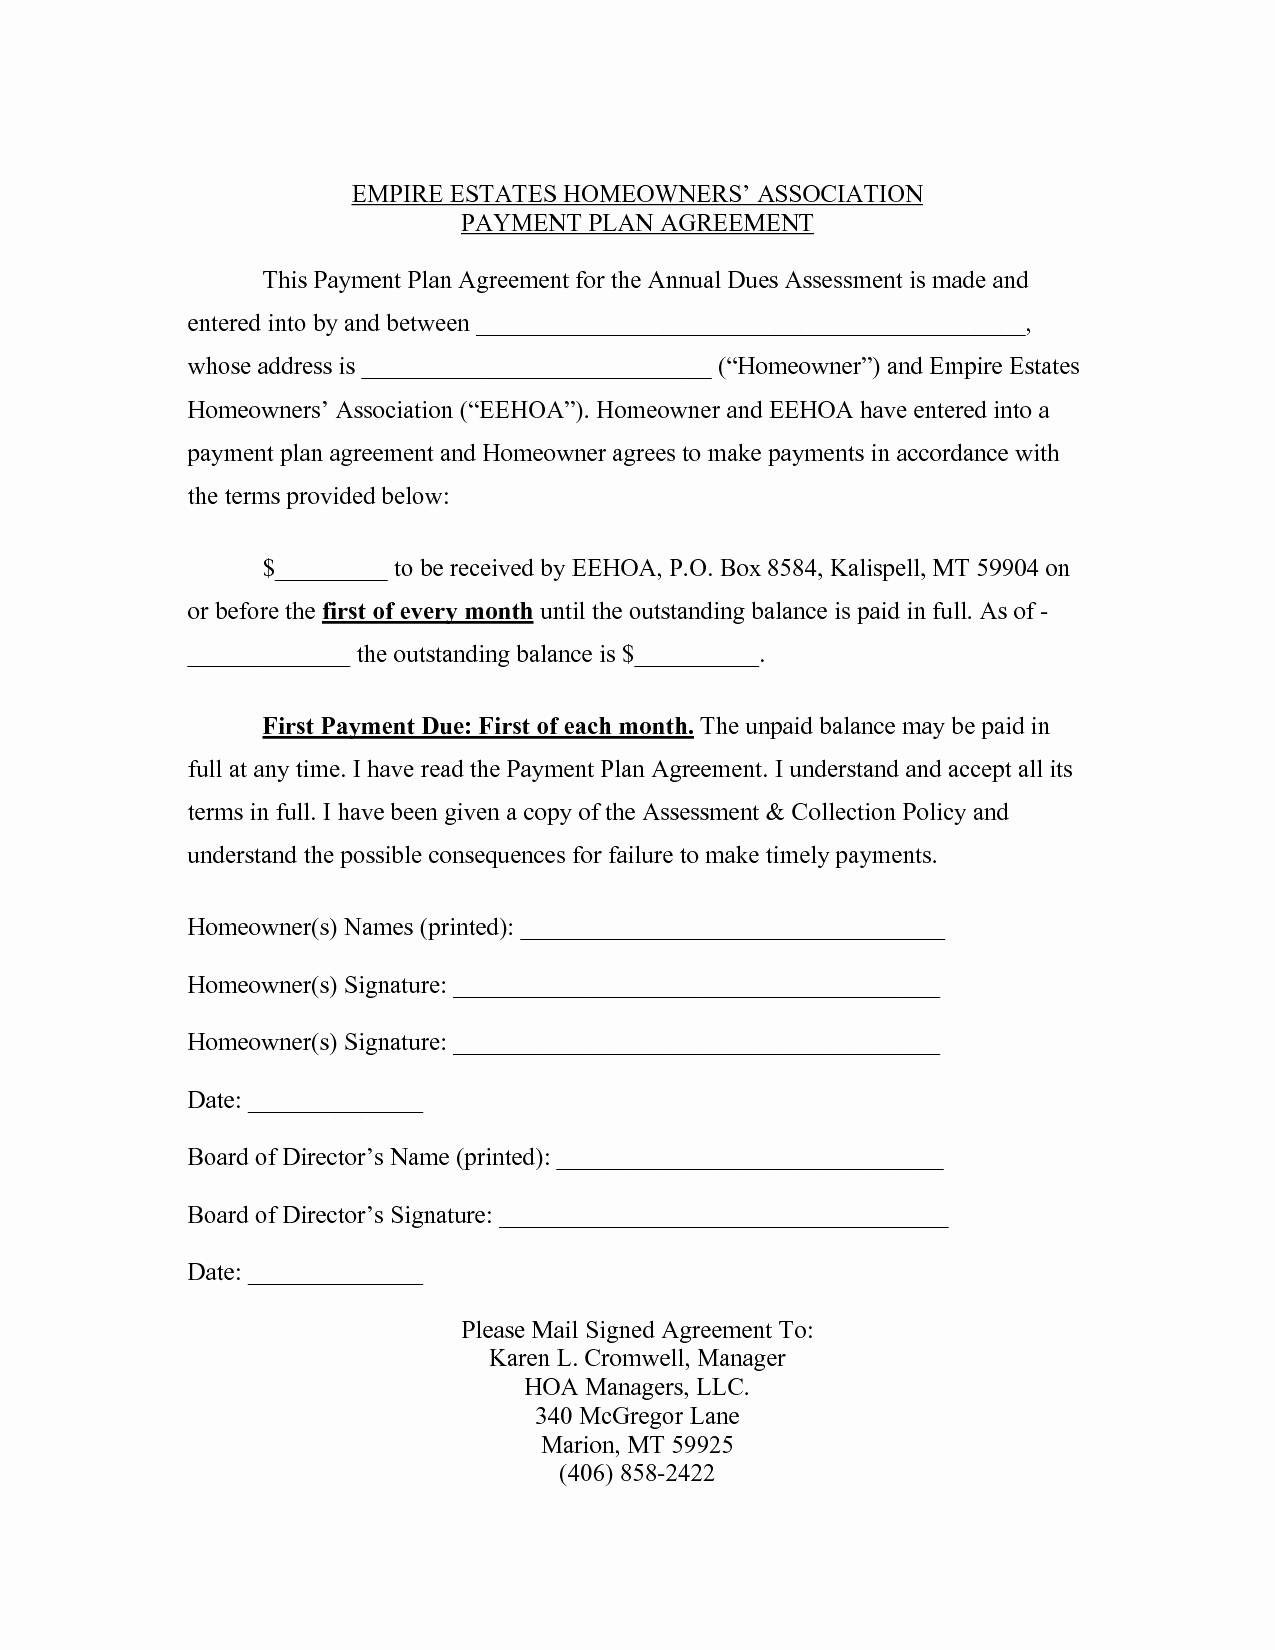 Full and Final Settlement Letter Template Car Accident - Car Accident form Template New 16 Luxury Car Accident Settlement